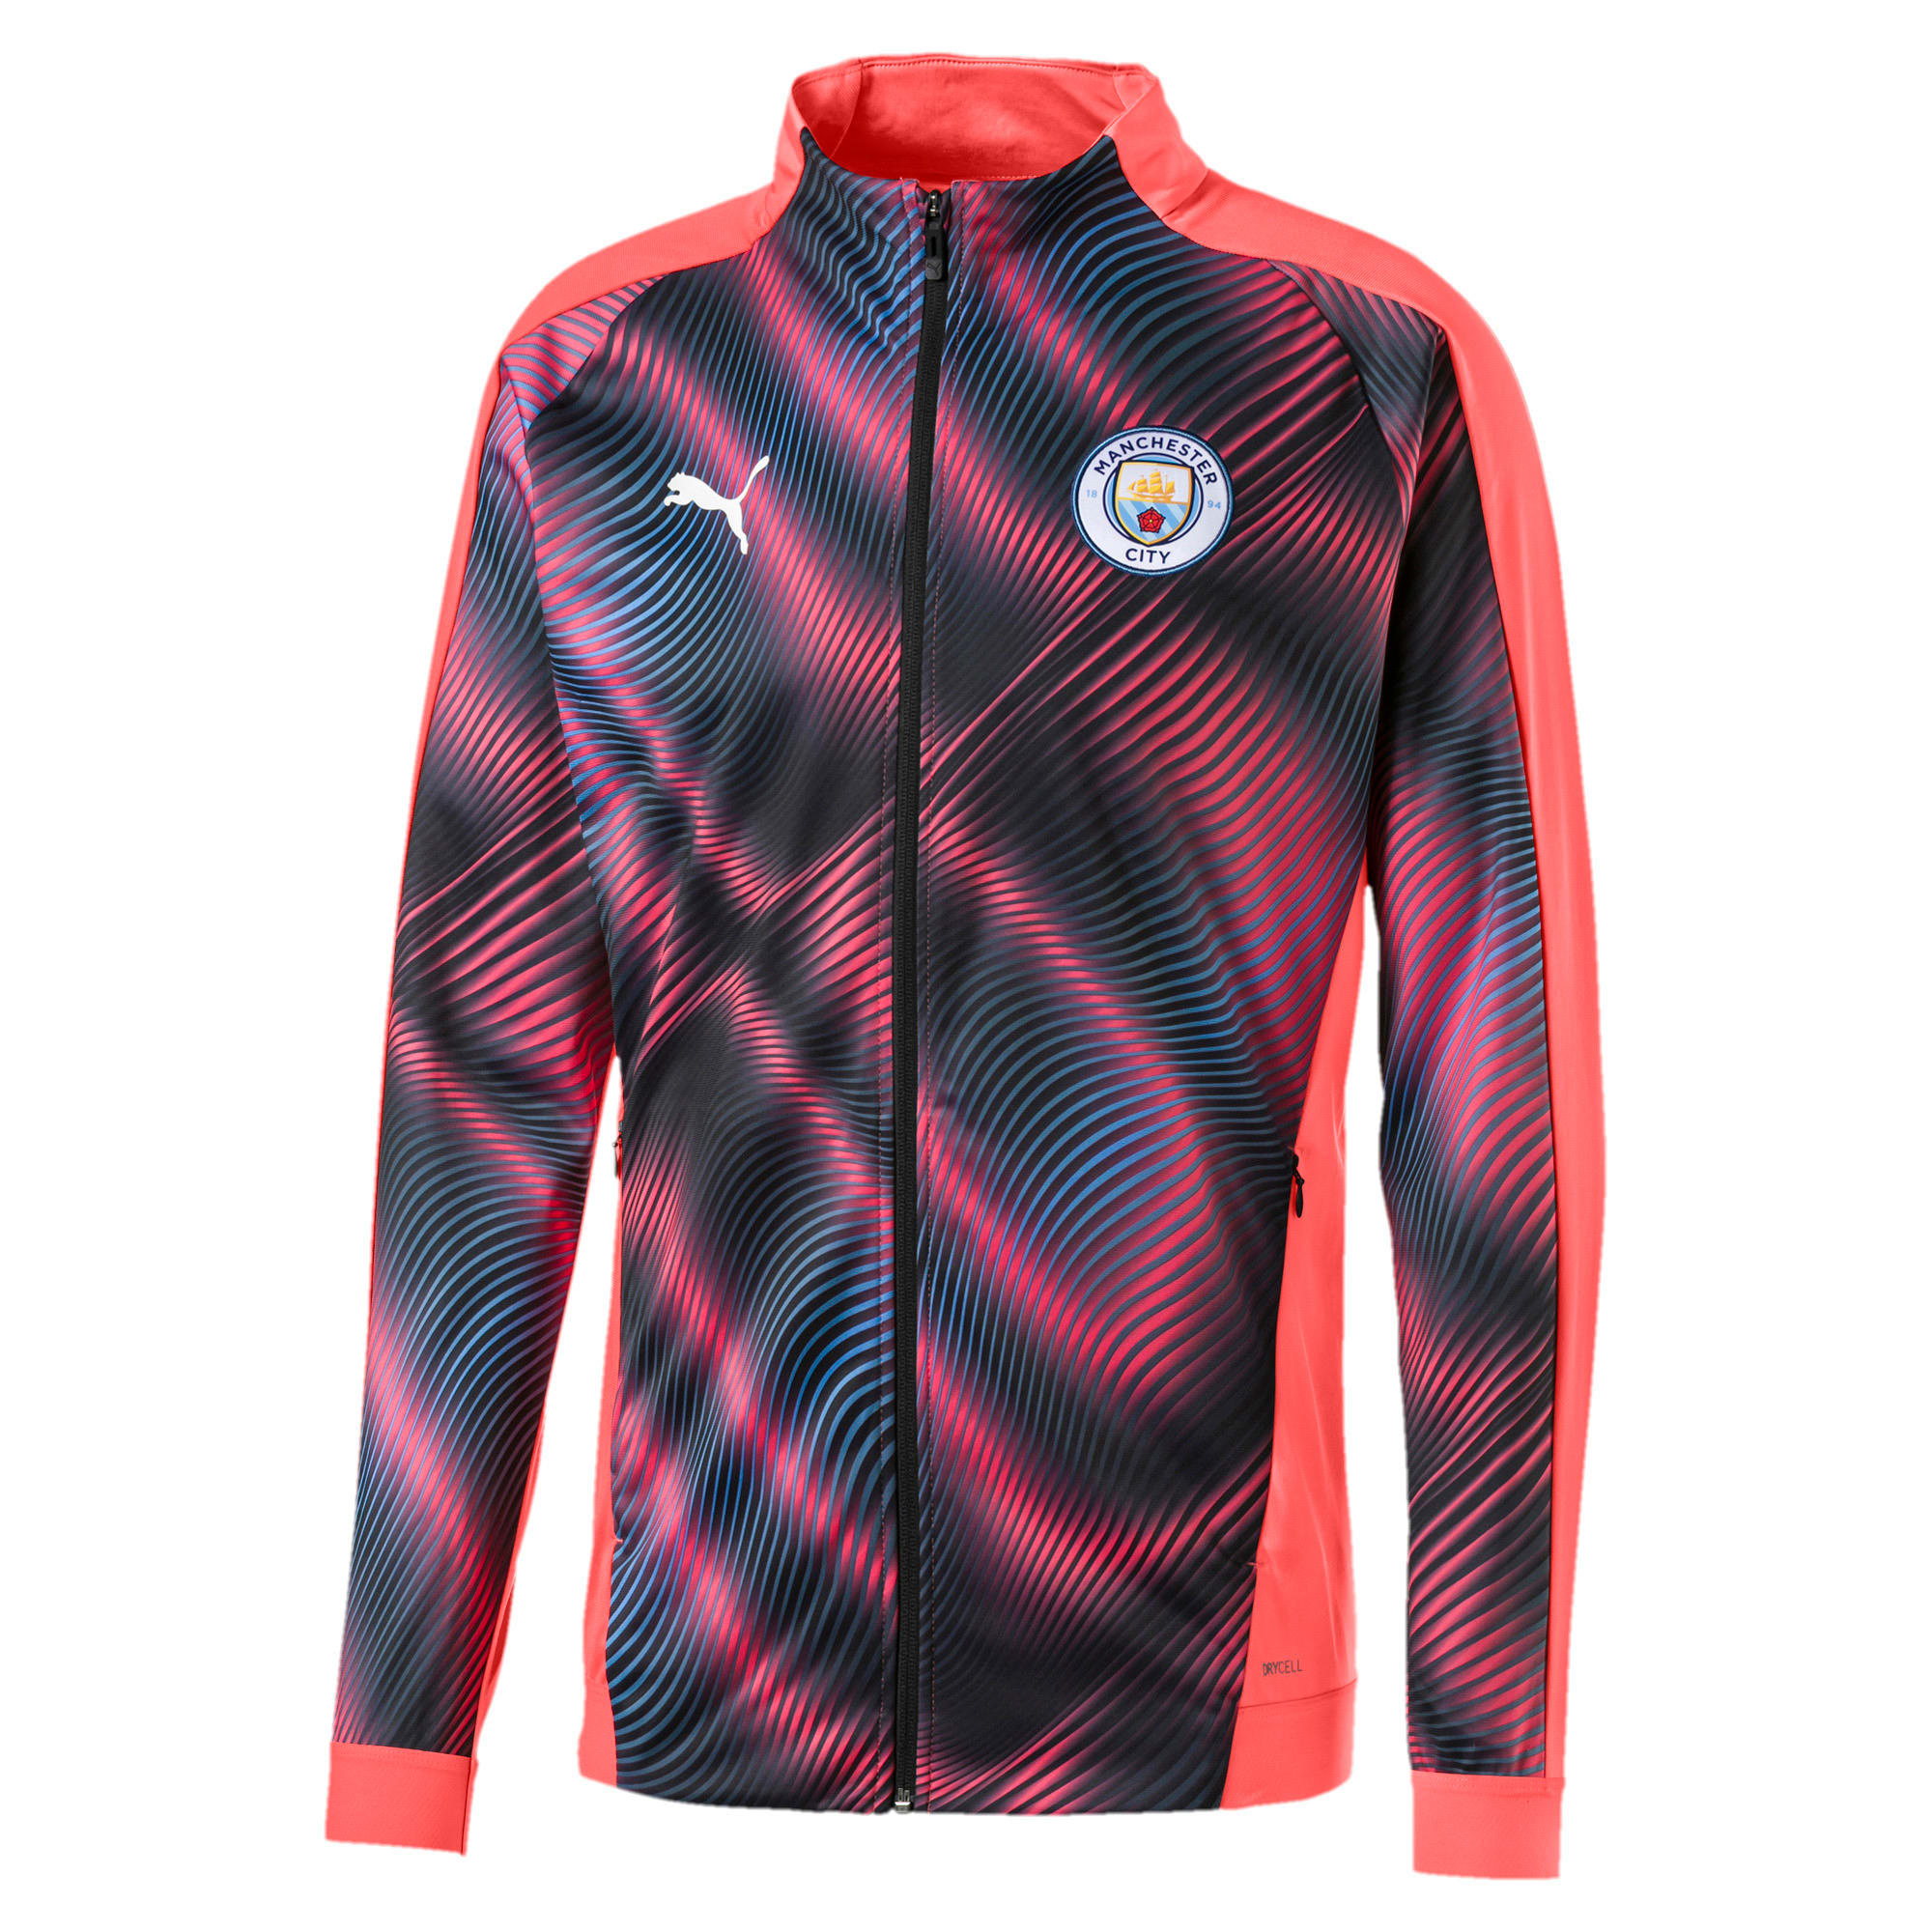 Thumbnail 1 of Man City Stadium League Men's Jacket, Georgia Peach-Puma Black, medium